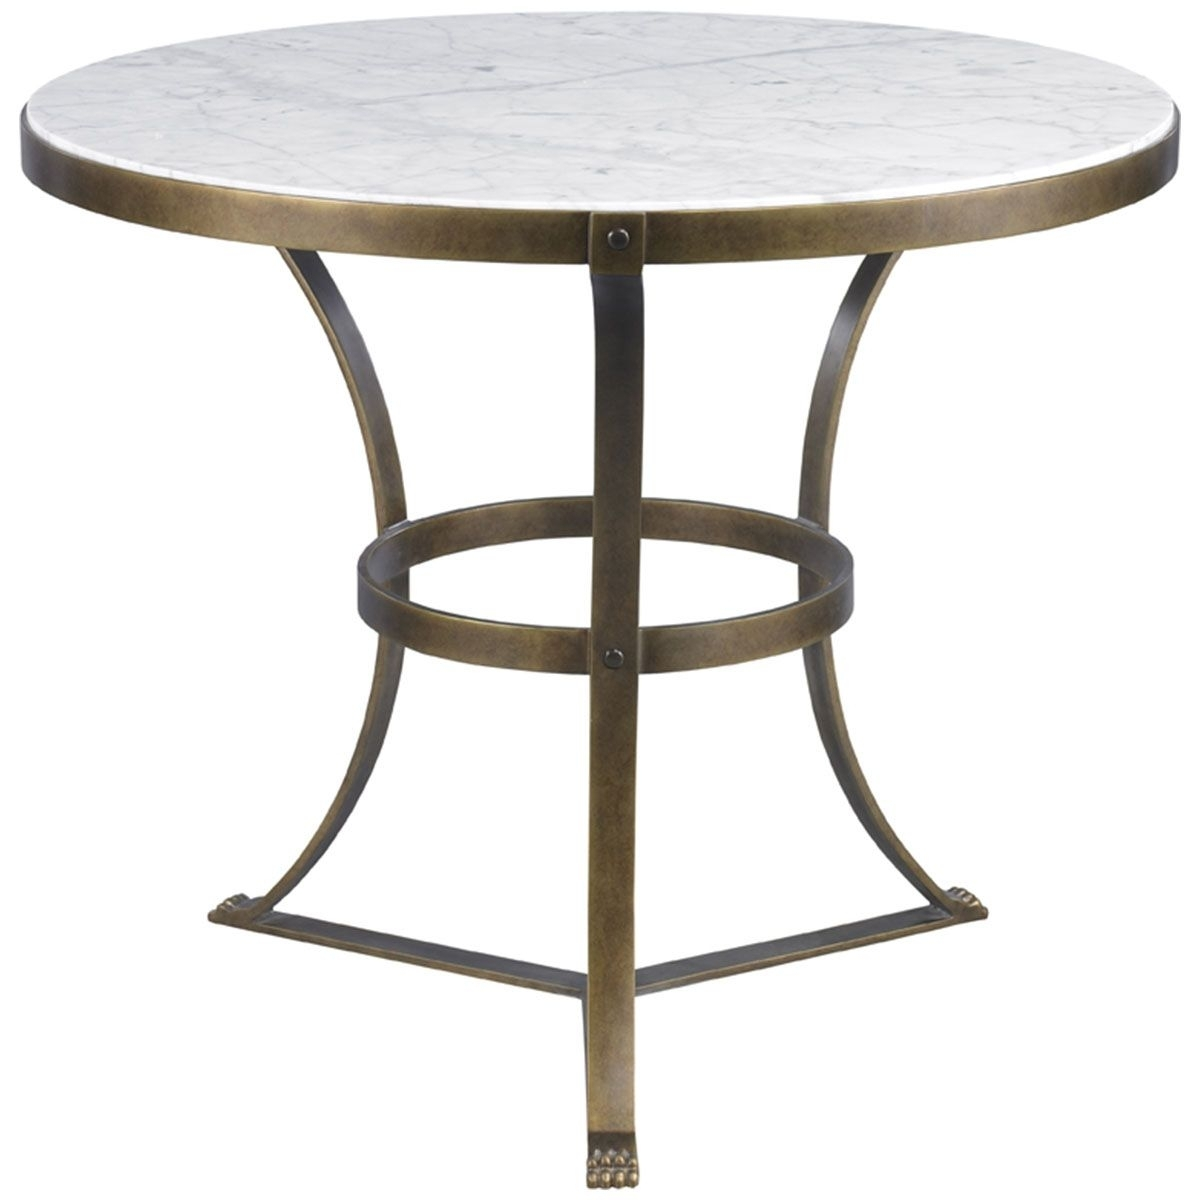 Lillian August Piers Side Table In Aged Gold La13321-01 | Lillian with regard to Aged Iron Cube Tables (Image 19 of 30)